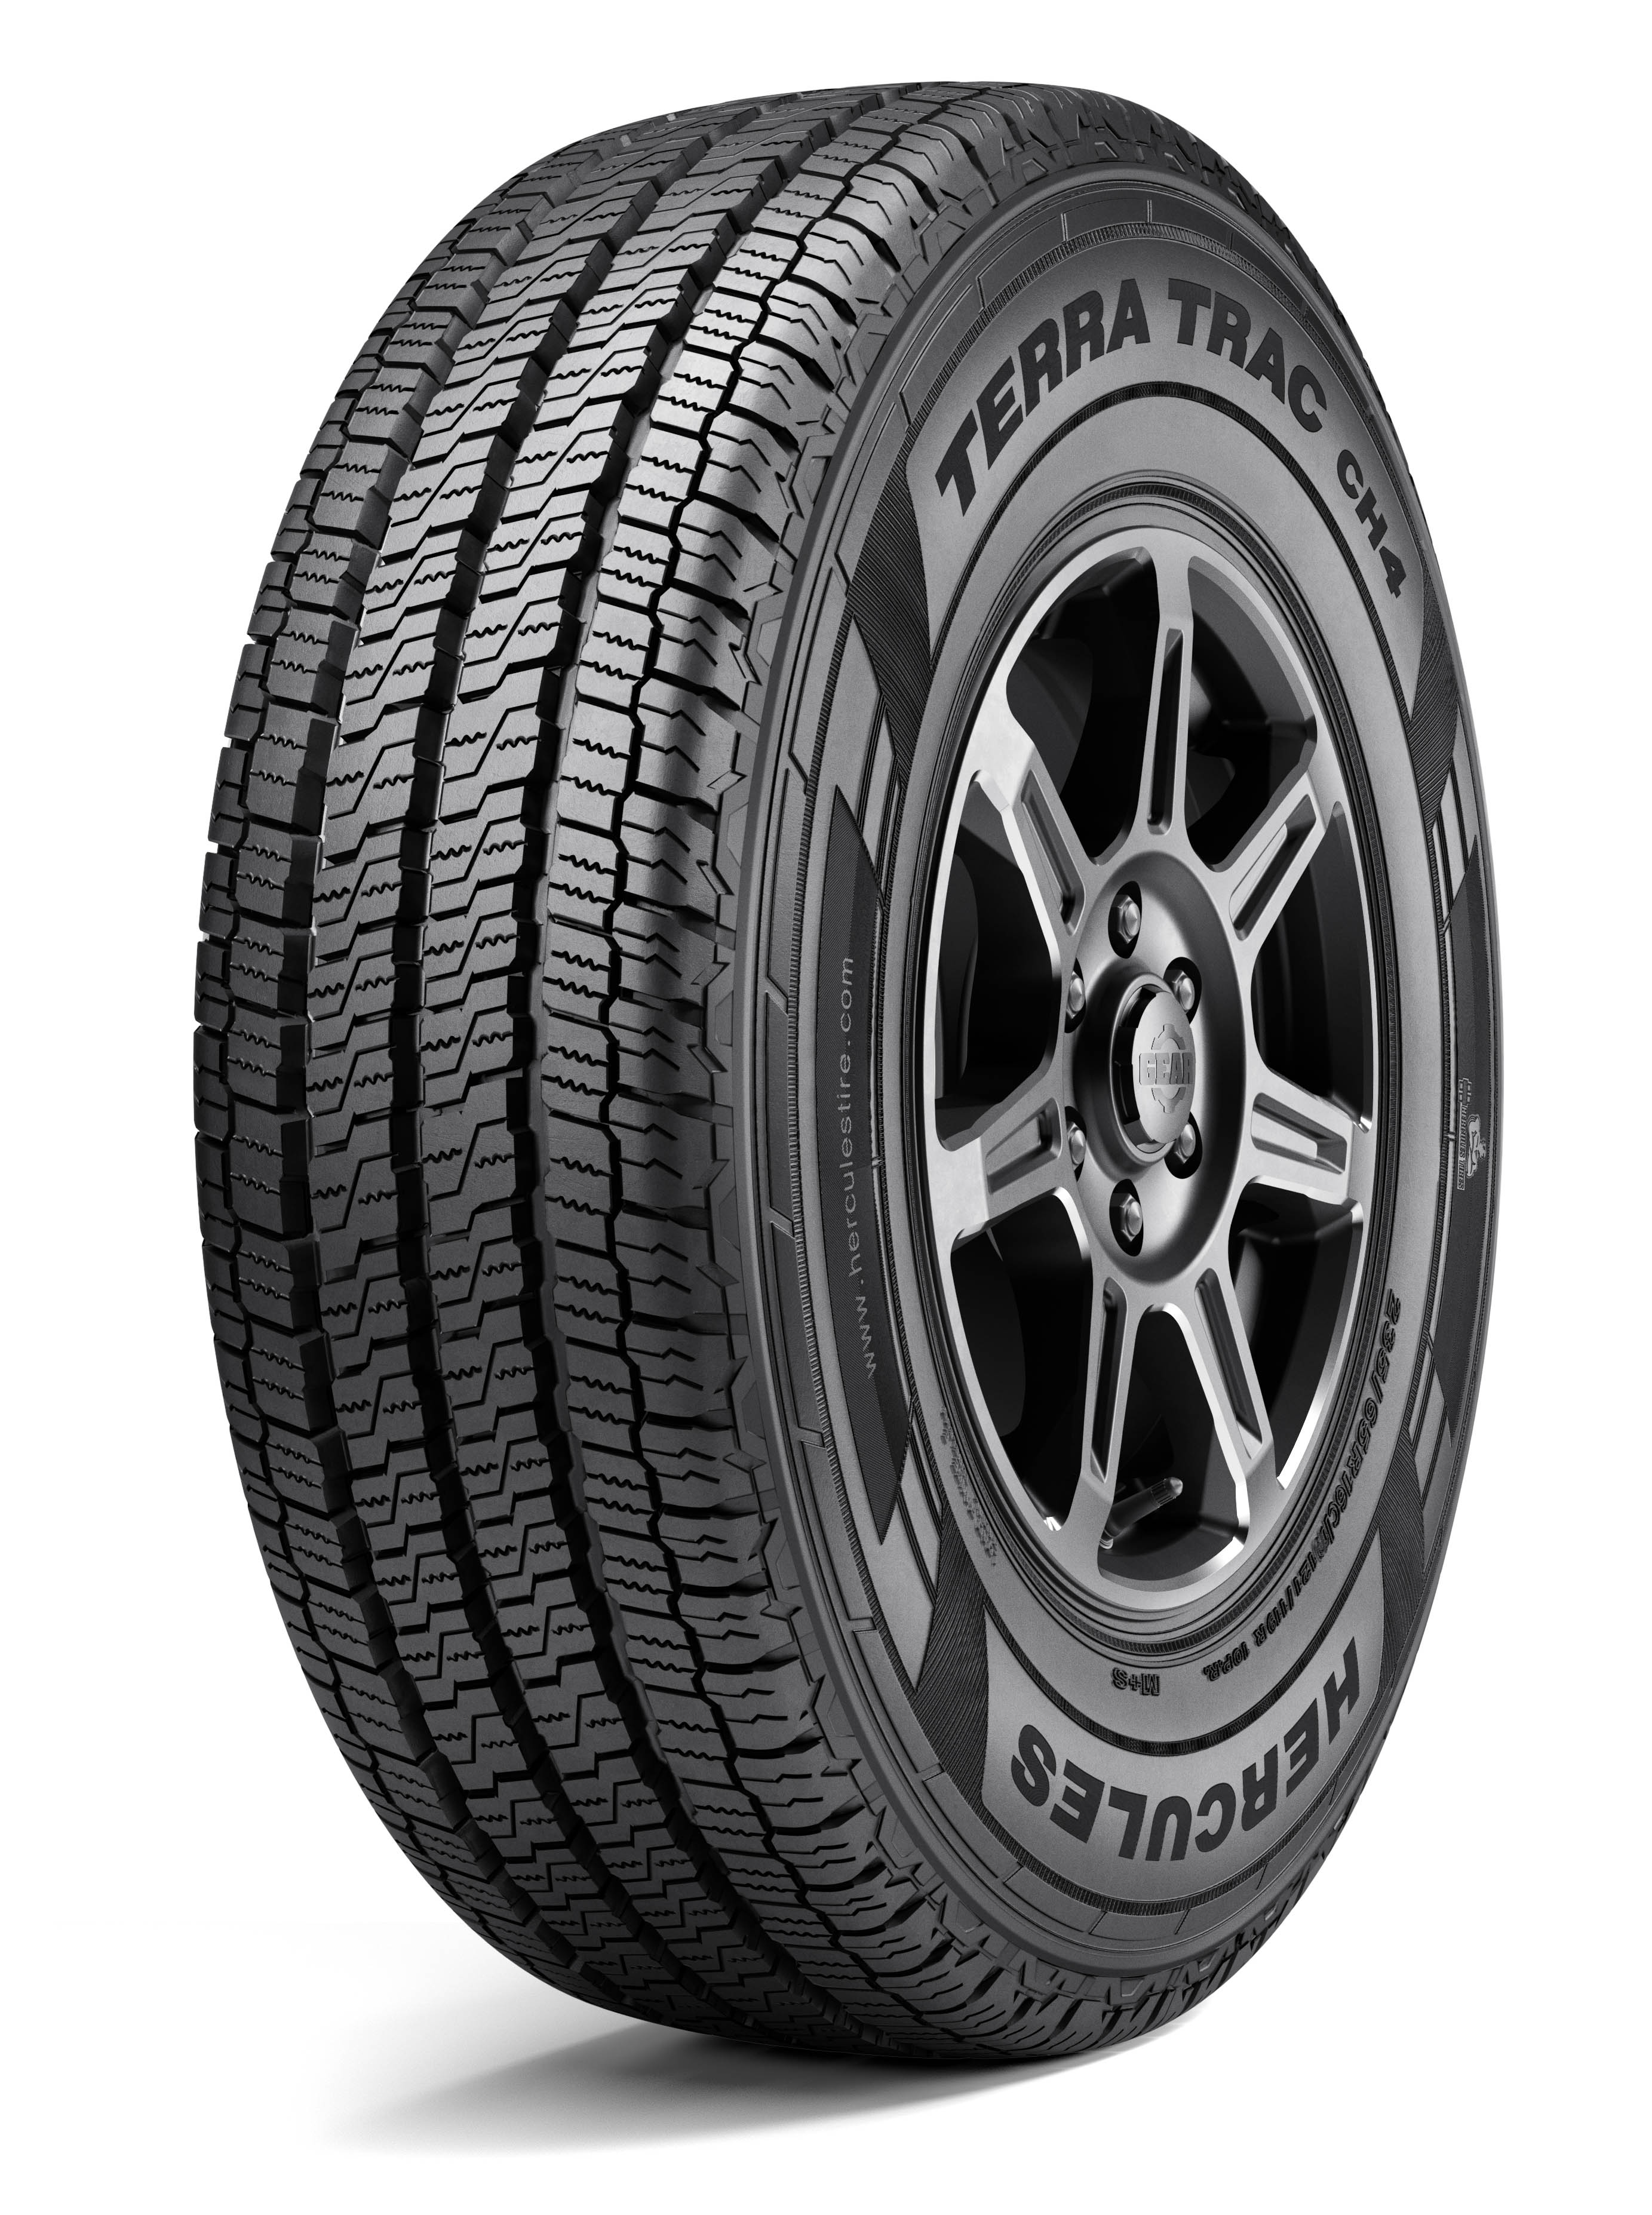 Hercules Has a New Tire for Cargo Vans and Light Trucks